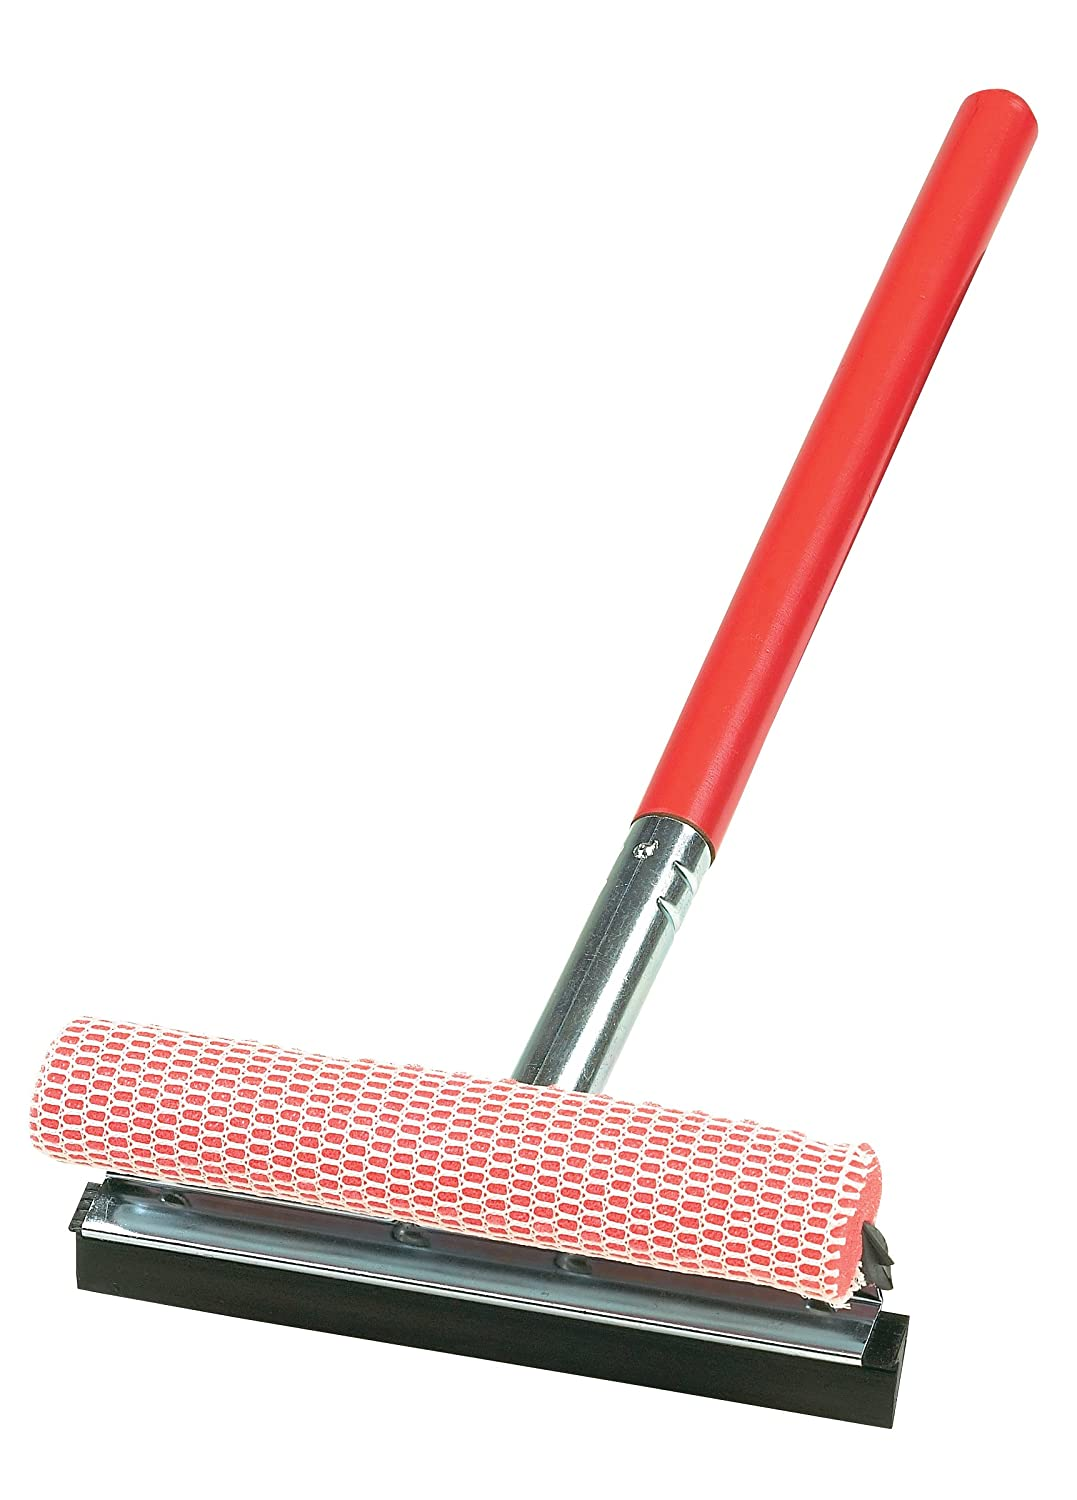 Carrand 9010R Red 8' Metal Squeegee Head with 20' Wood Handle